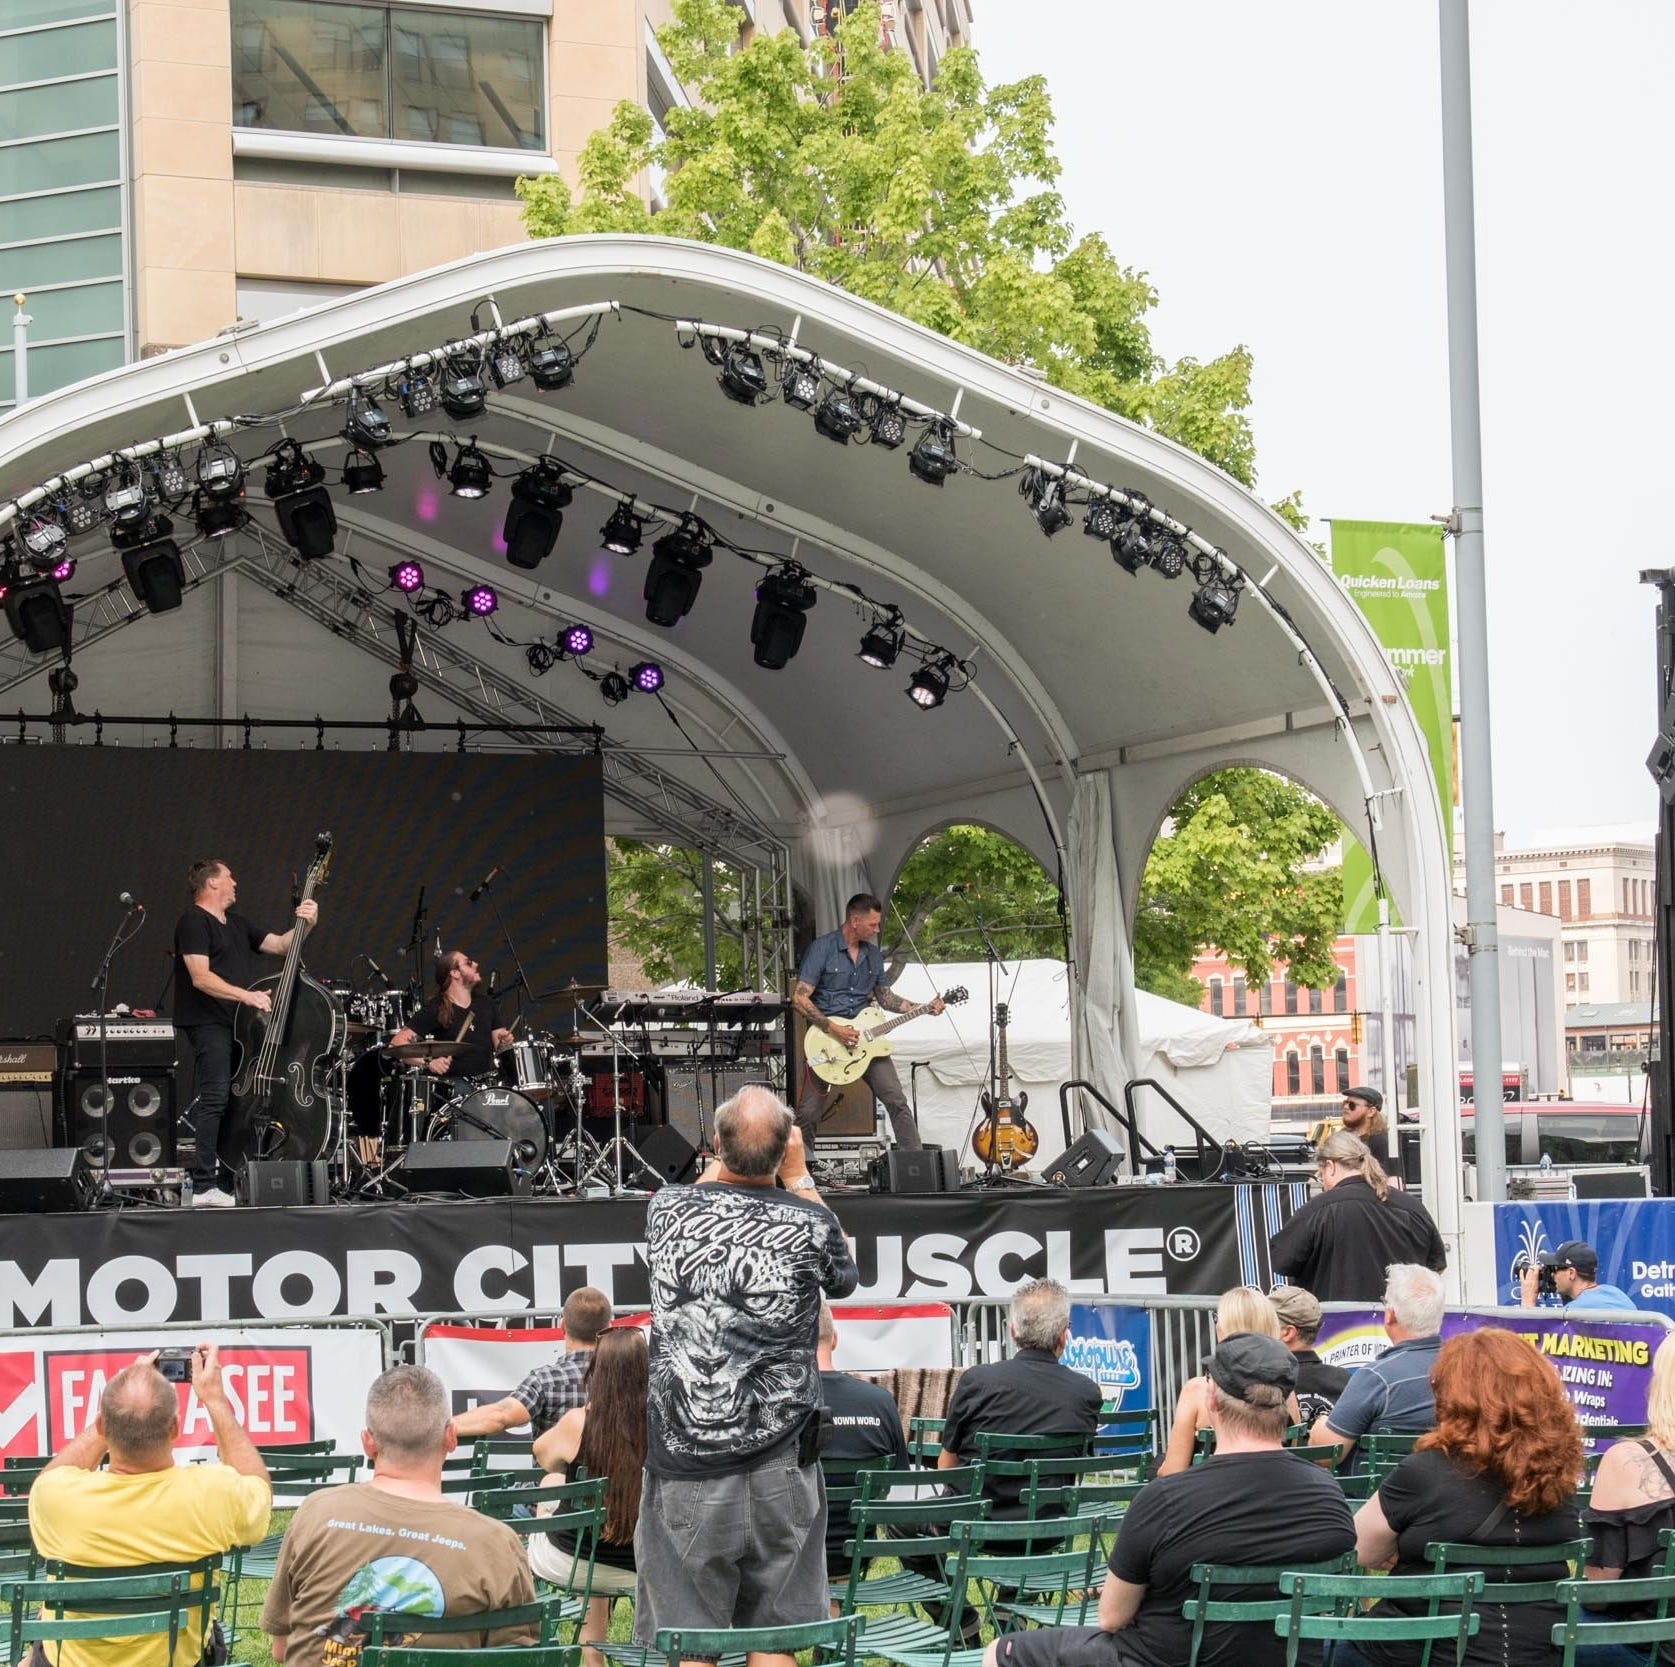 Motor City Muscle wraps up with good tunes, light crowds in Detroit